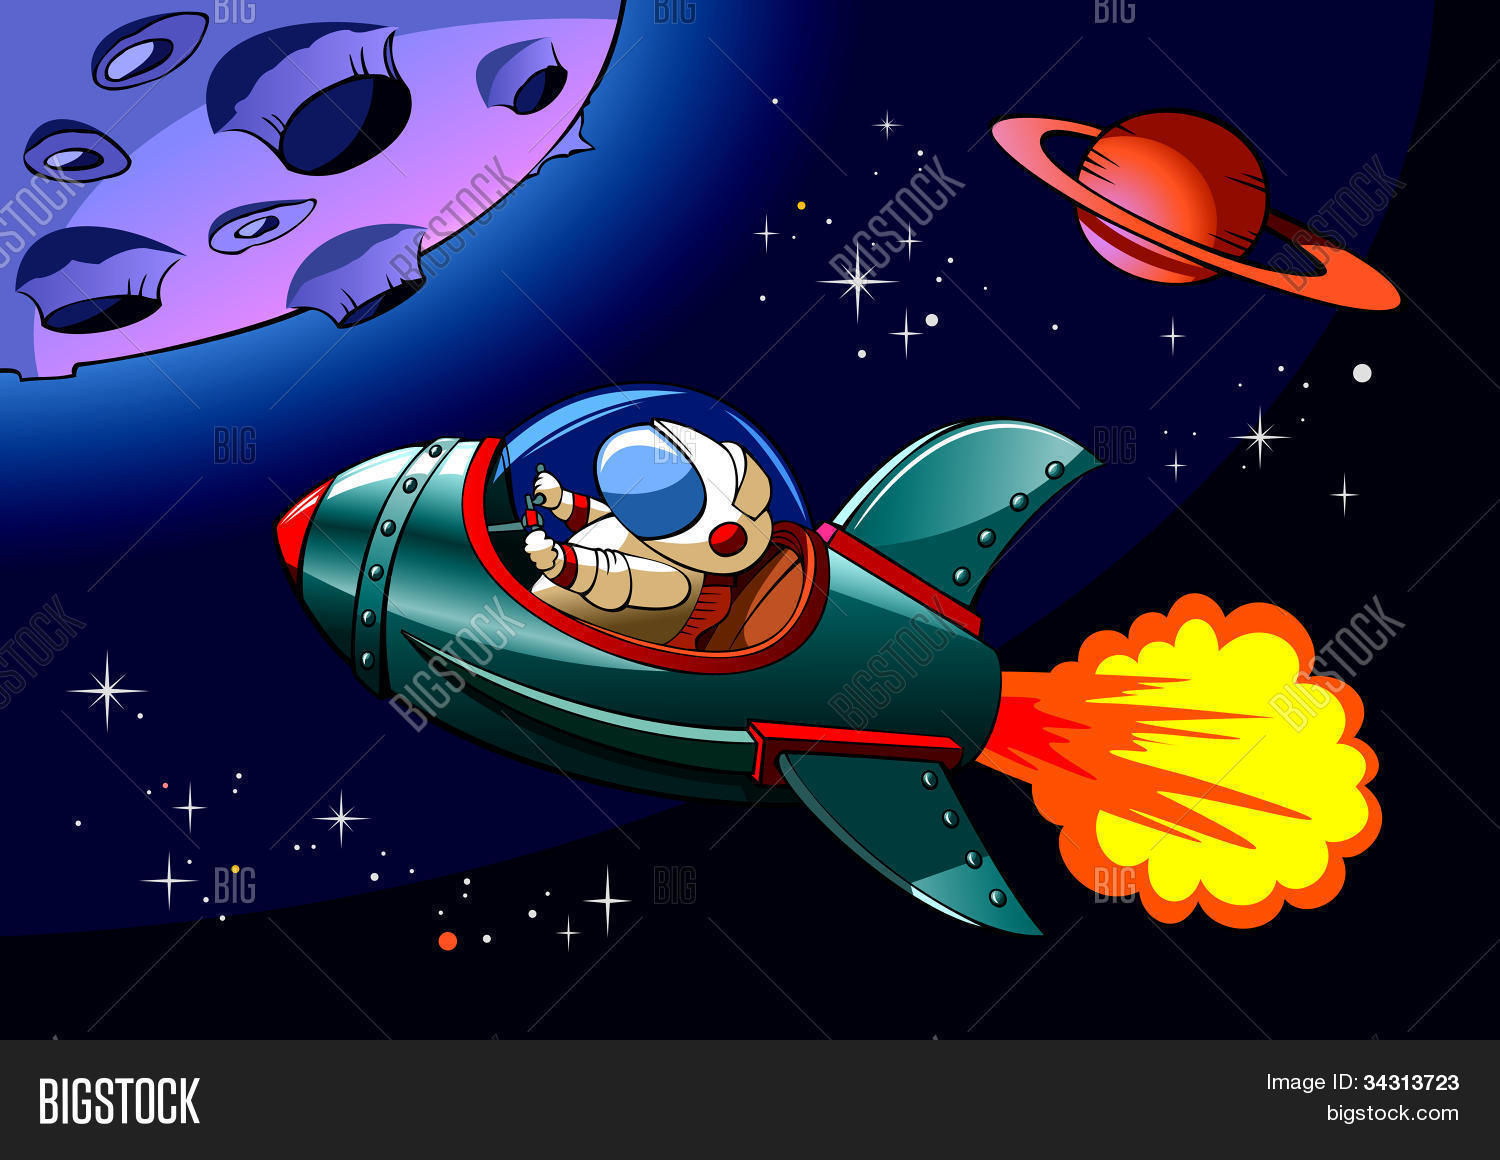 space ship graphics - photo #28